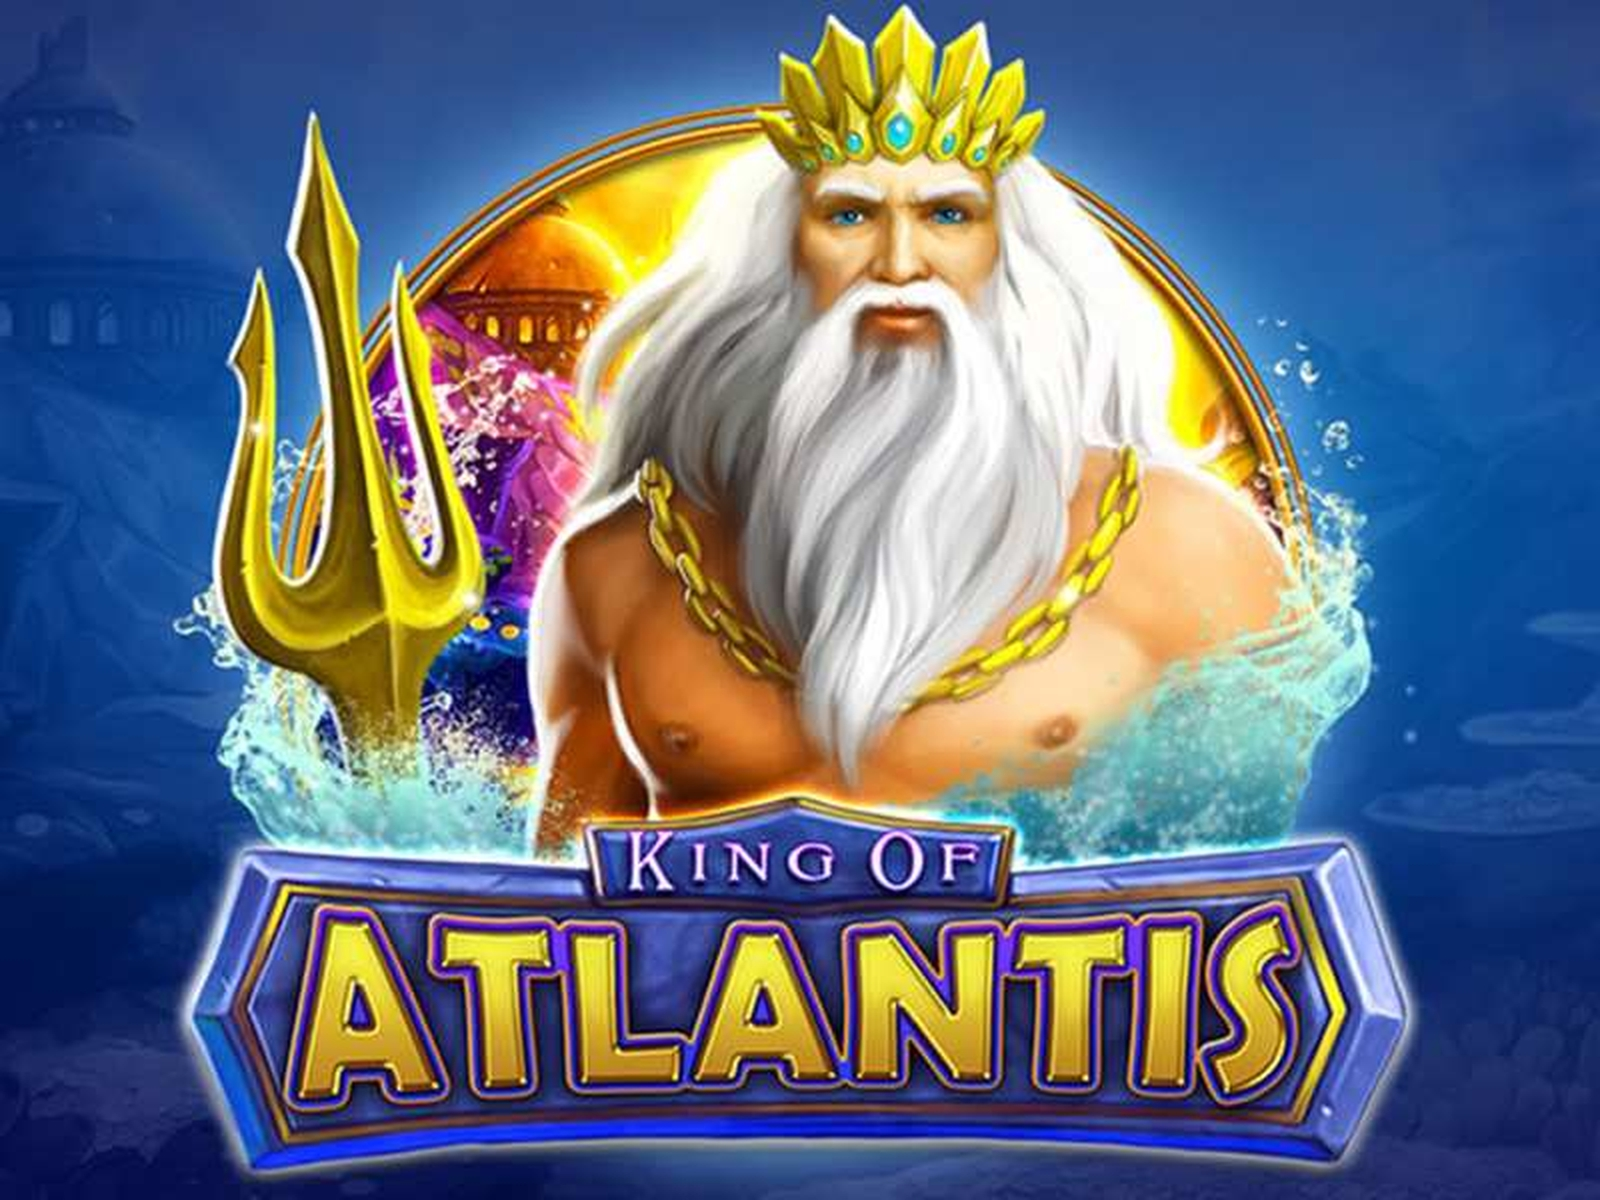 The King of atlantis Online Slot Demo Game by IGT